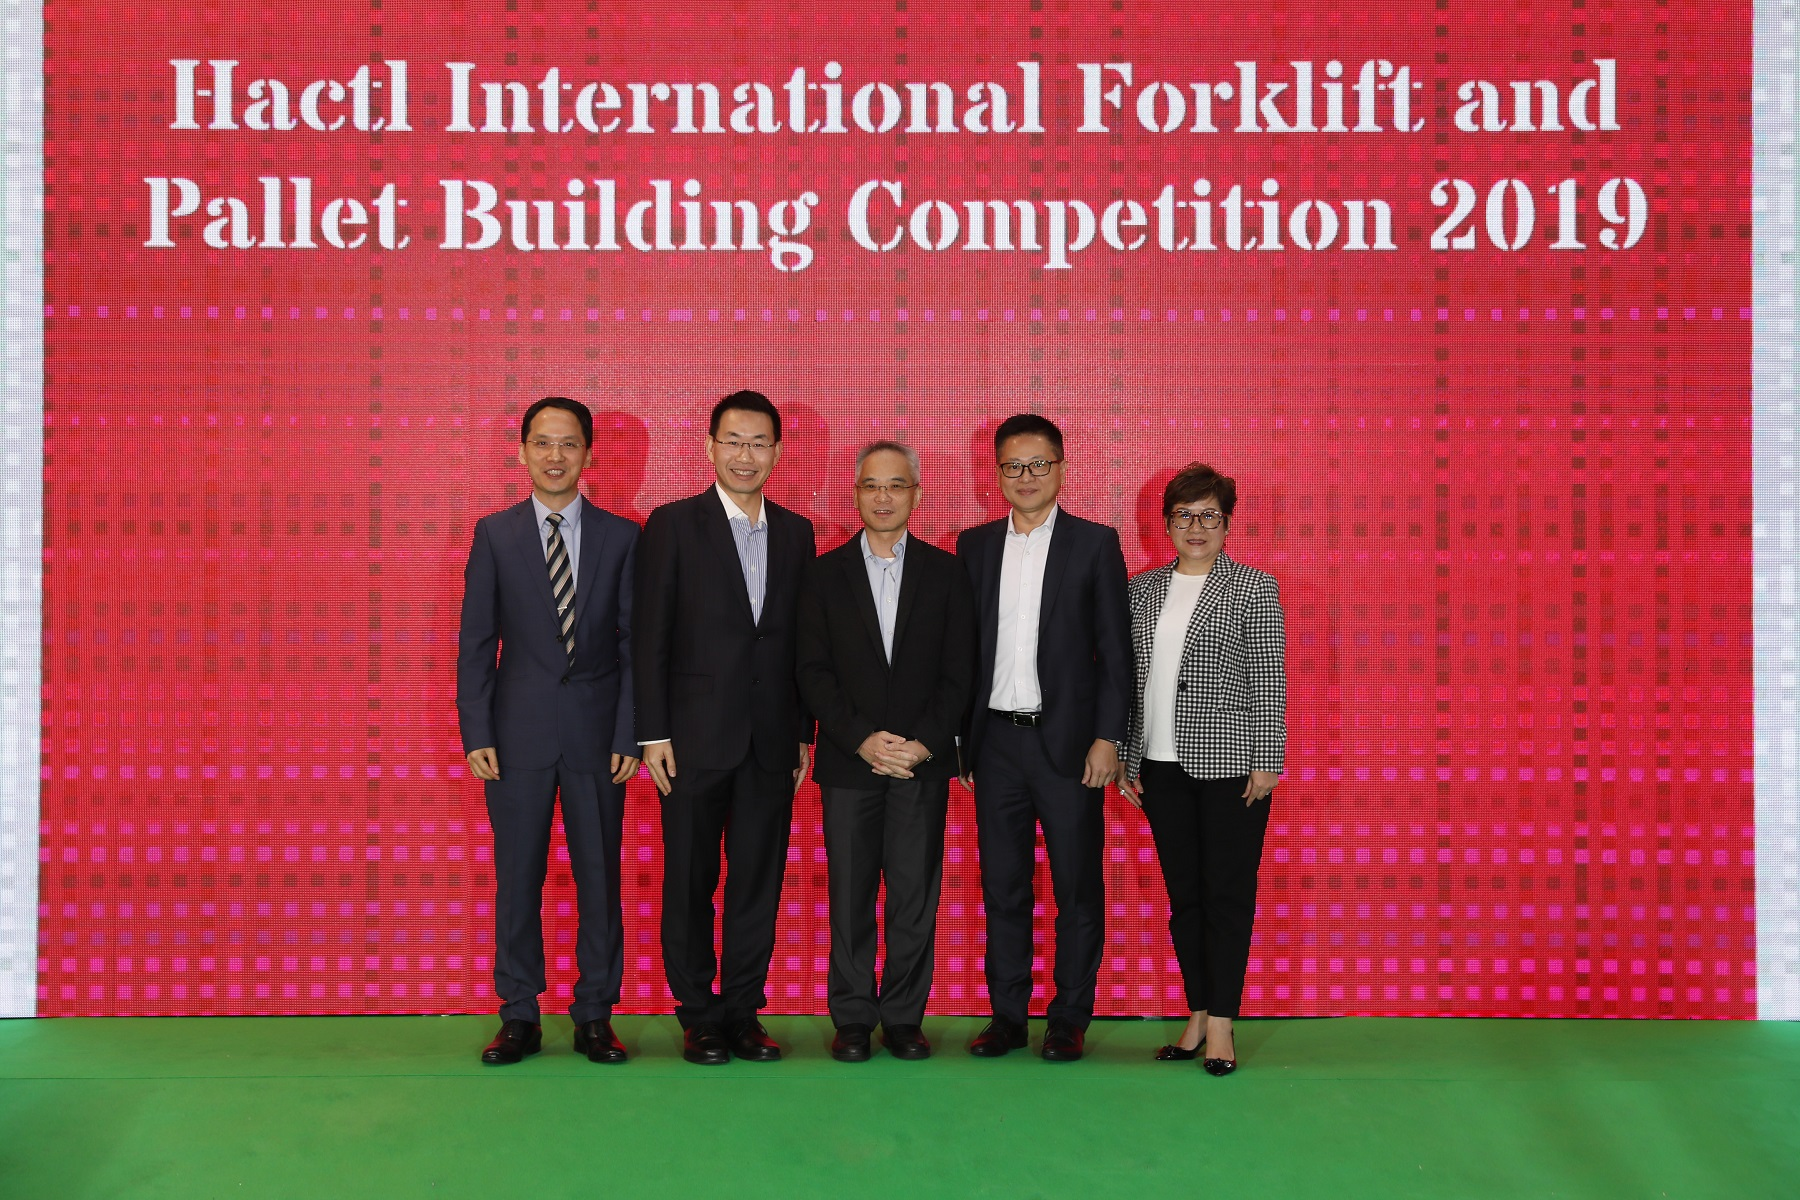 Hactl International Forklift and Pallet Building Competition 2019